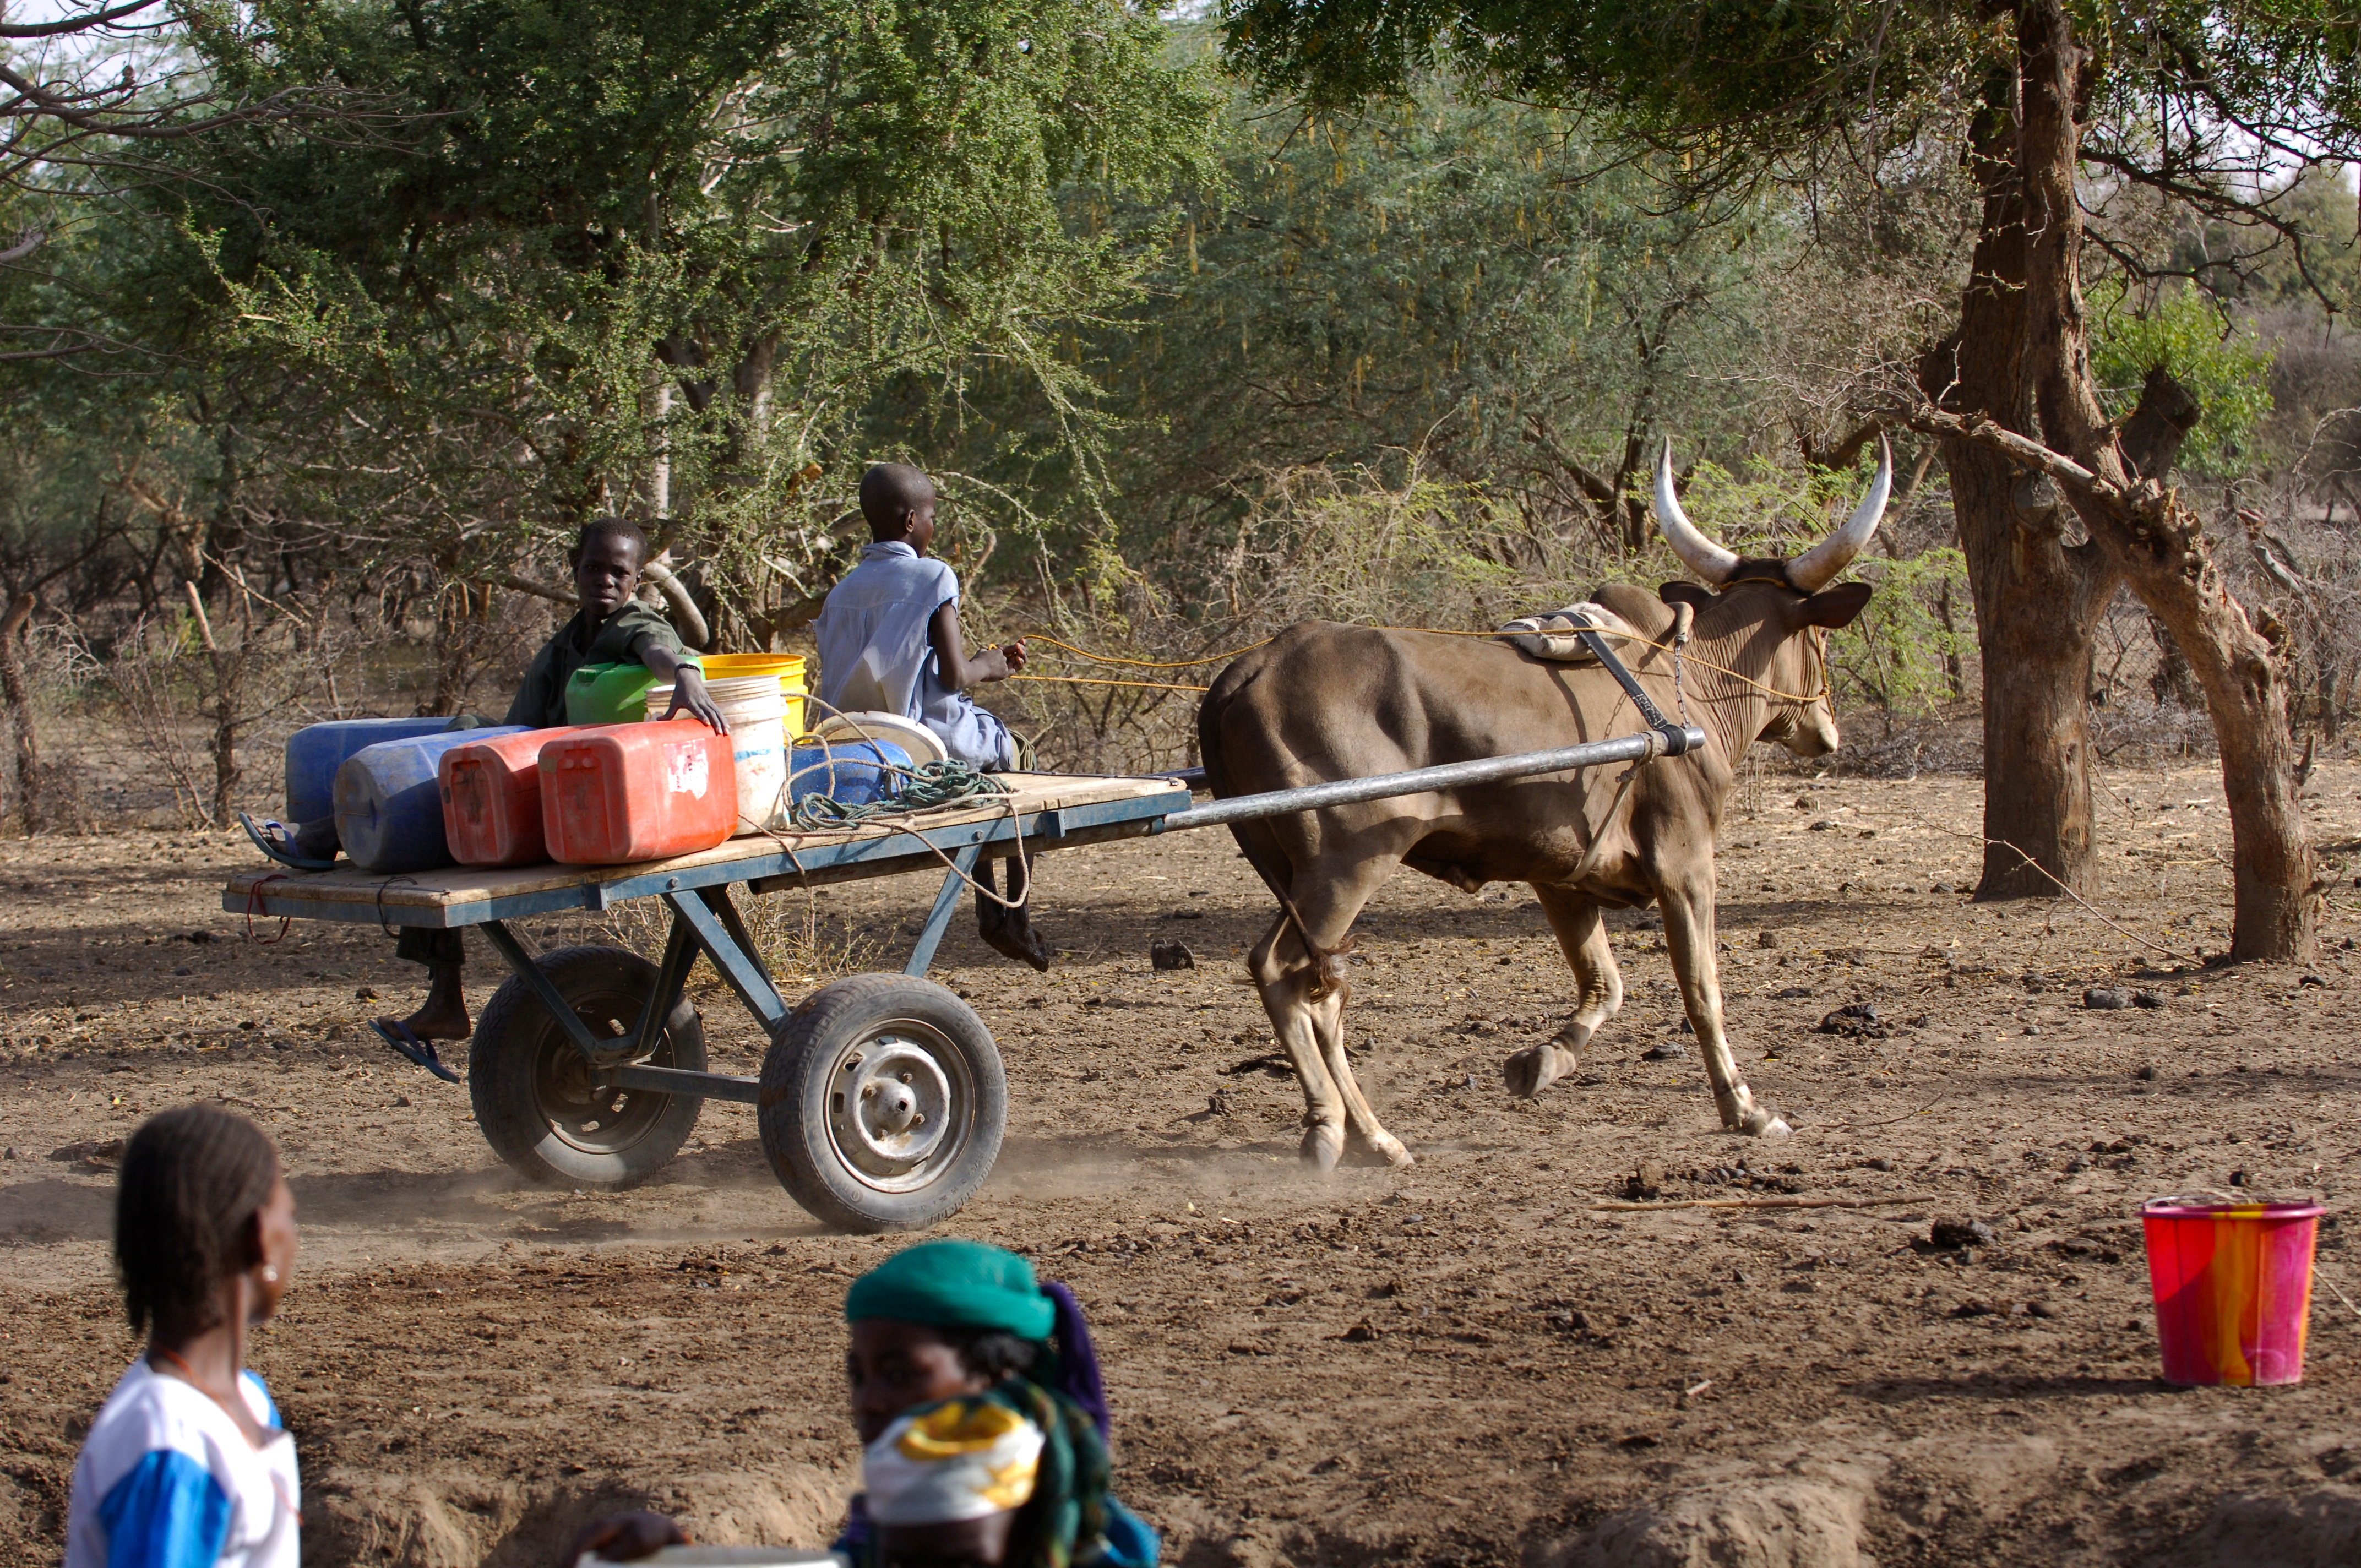 A cart pulled by a zebu makes carrying water back to the village quicker and easier in Niger. Photo from World Vision Australia